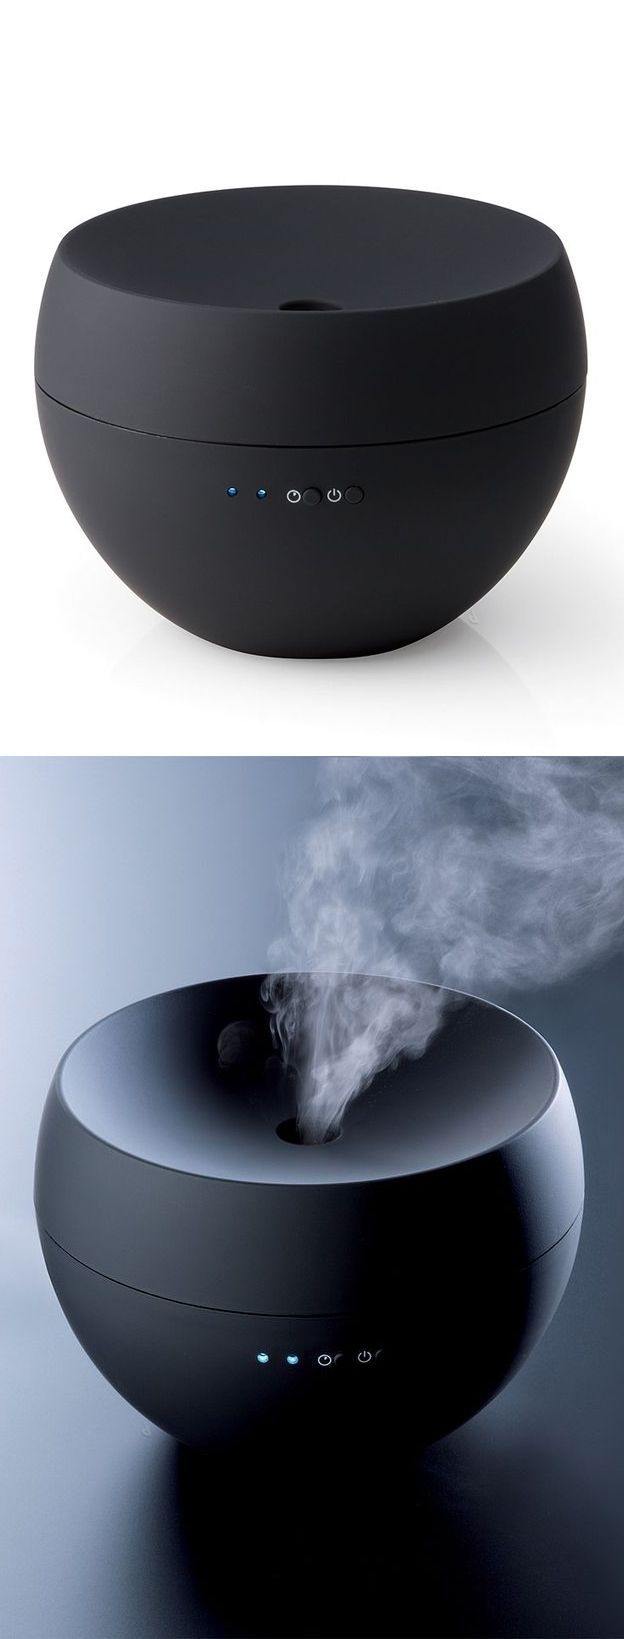 The Jasmine Aroma Diffuser blends essential oil and water together using ultrasonics to create a fine mist that fills the room for up to 24 hours. #product_design